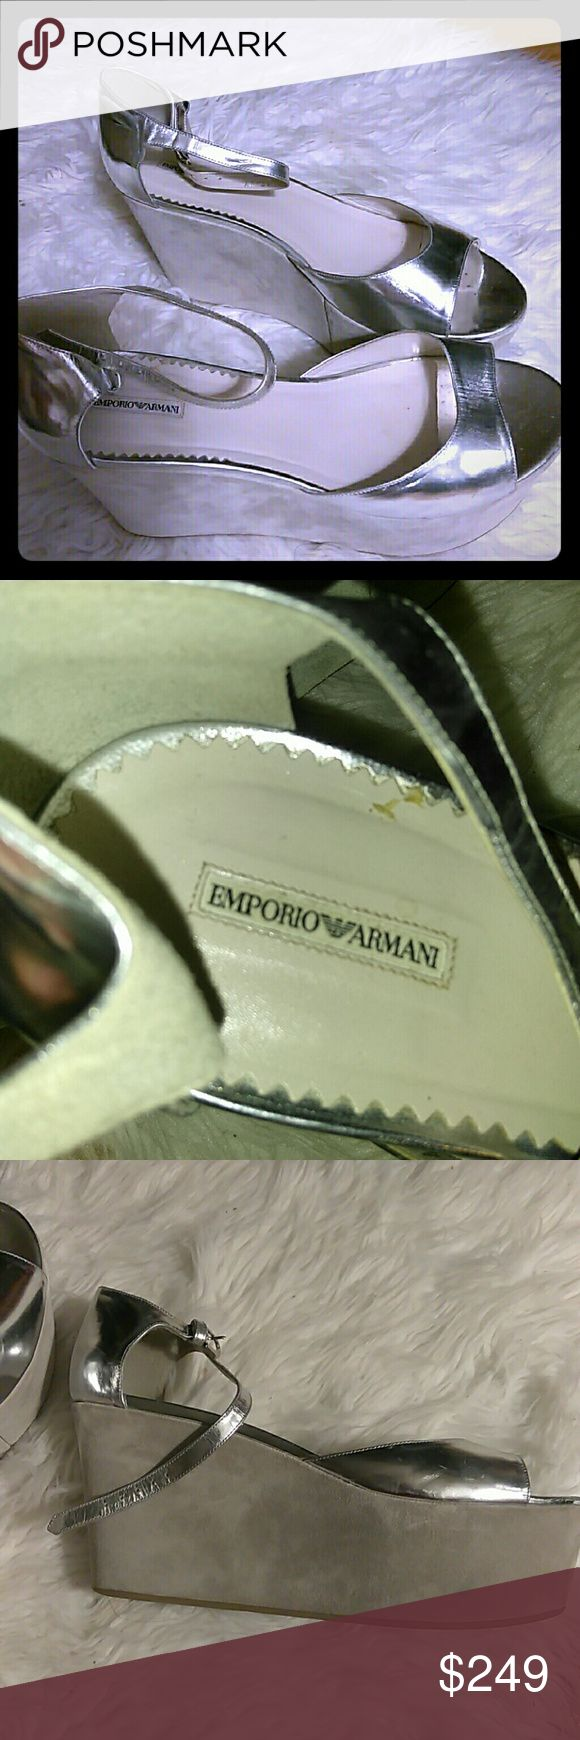 "Emperio Armani silver wedge sandals sz 40 Barely worn, maybe once or twice. The wedge is 2"" at smallest and +4"" @ heel. Suede wedge in grey and patent silver on the sandals. Emporio Armani Shoes Wedges"